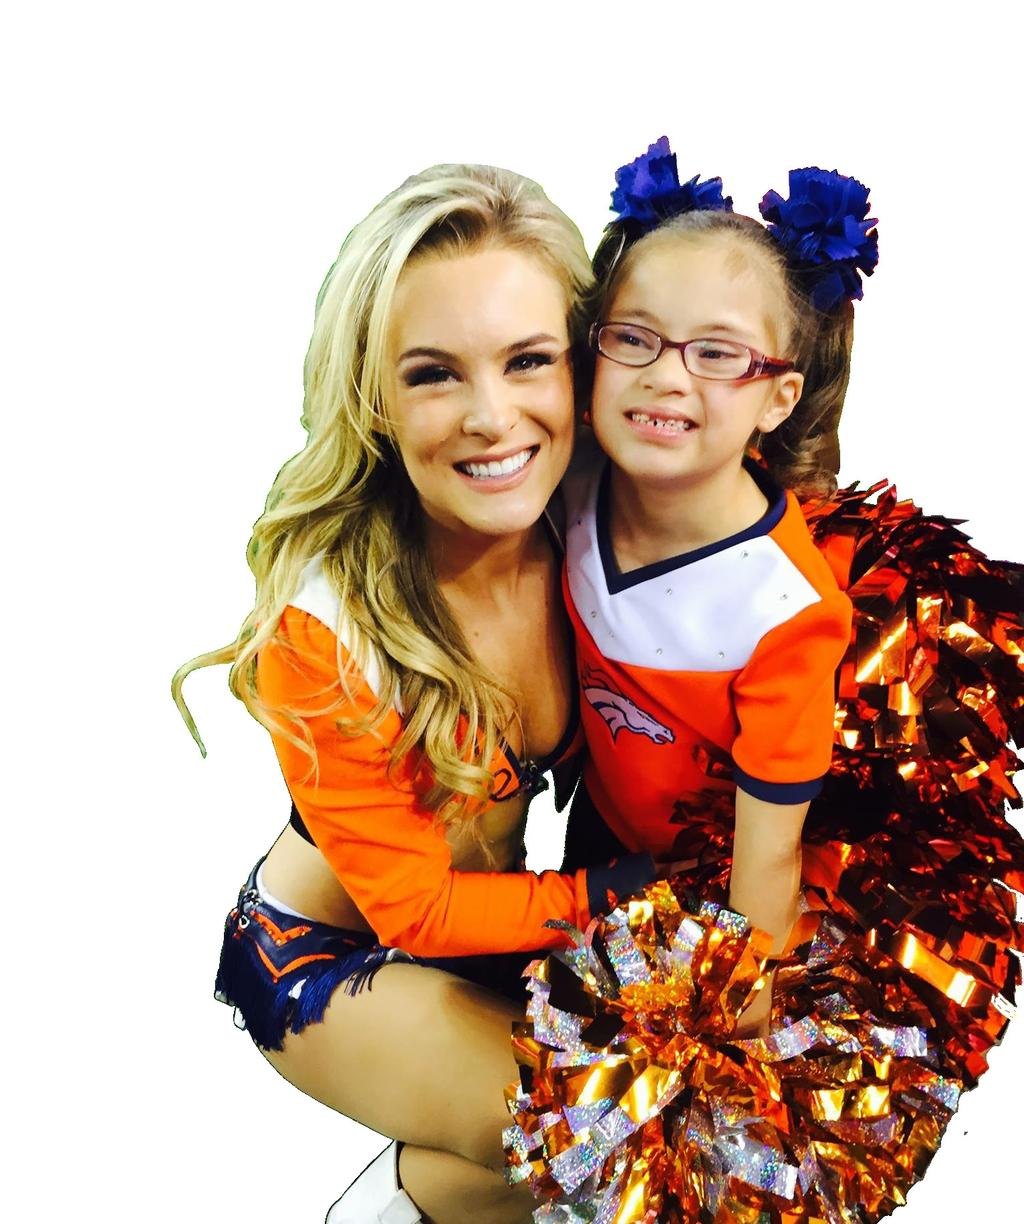 JDBC uniforms are to be worn only at JDBC appearances and events. 6. JDBC members must be signed in and out at each event by a parent or guardian. 7.